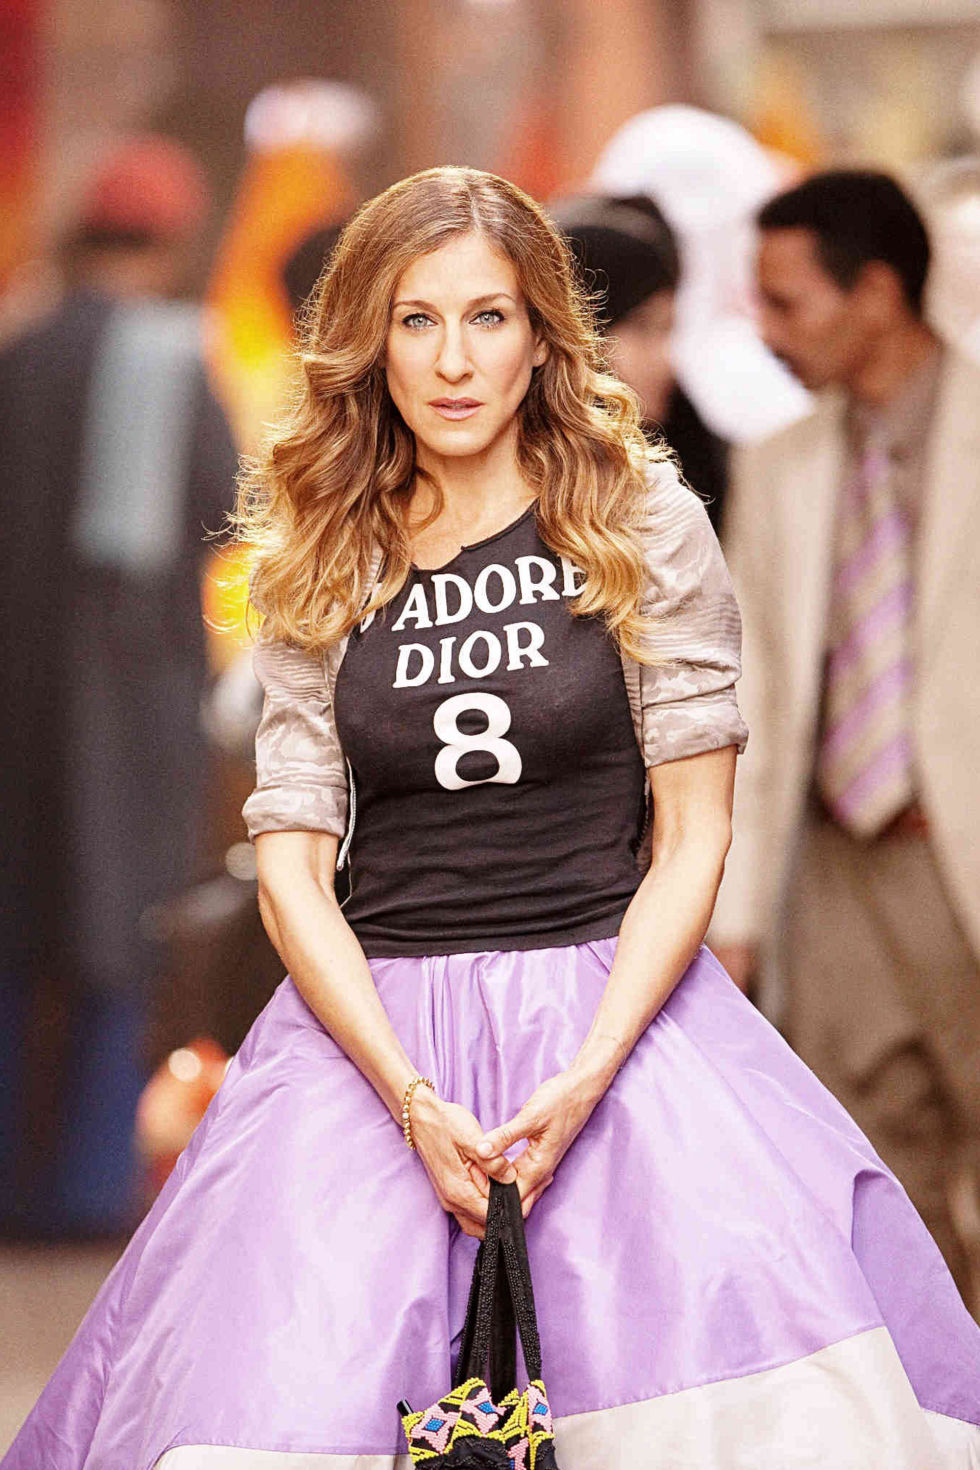 Carrie Bradshaw - the muse for my original blog idea.